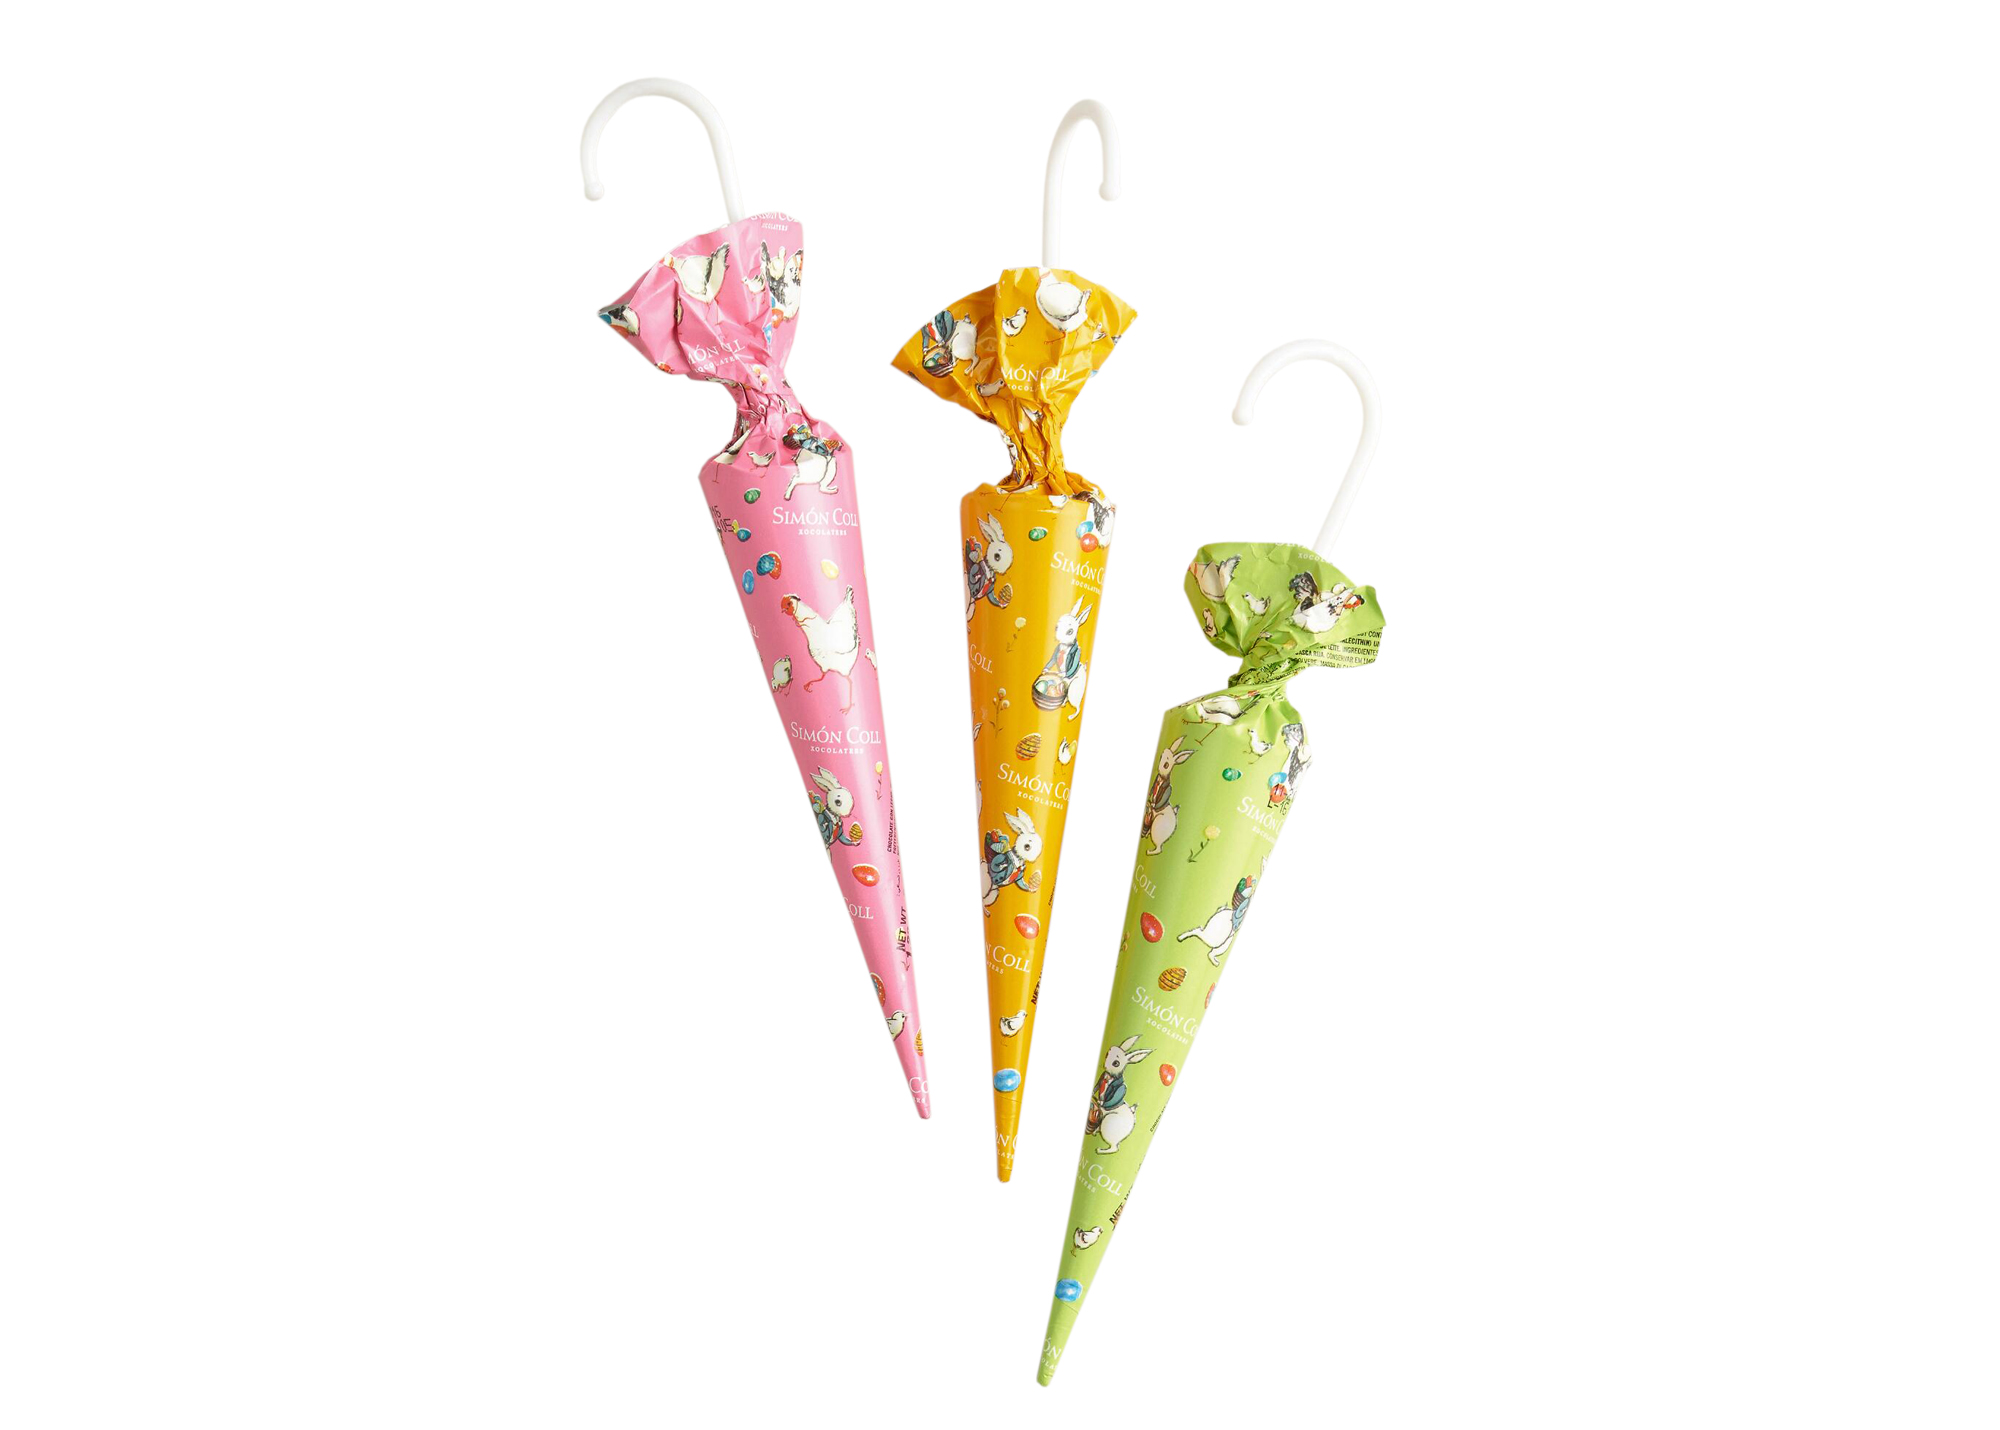 Simon Coll Chocolate Easter Umbrellas